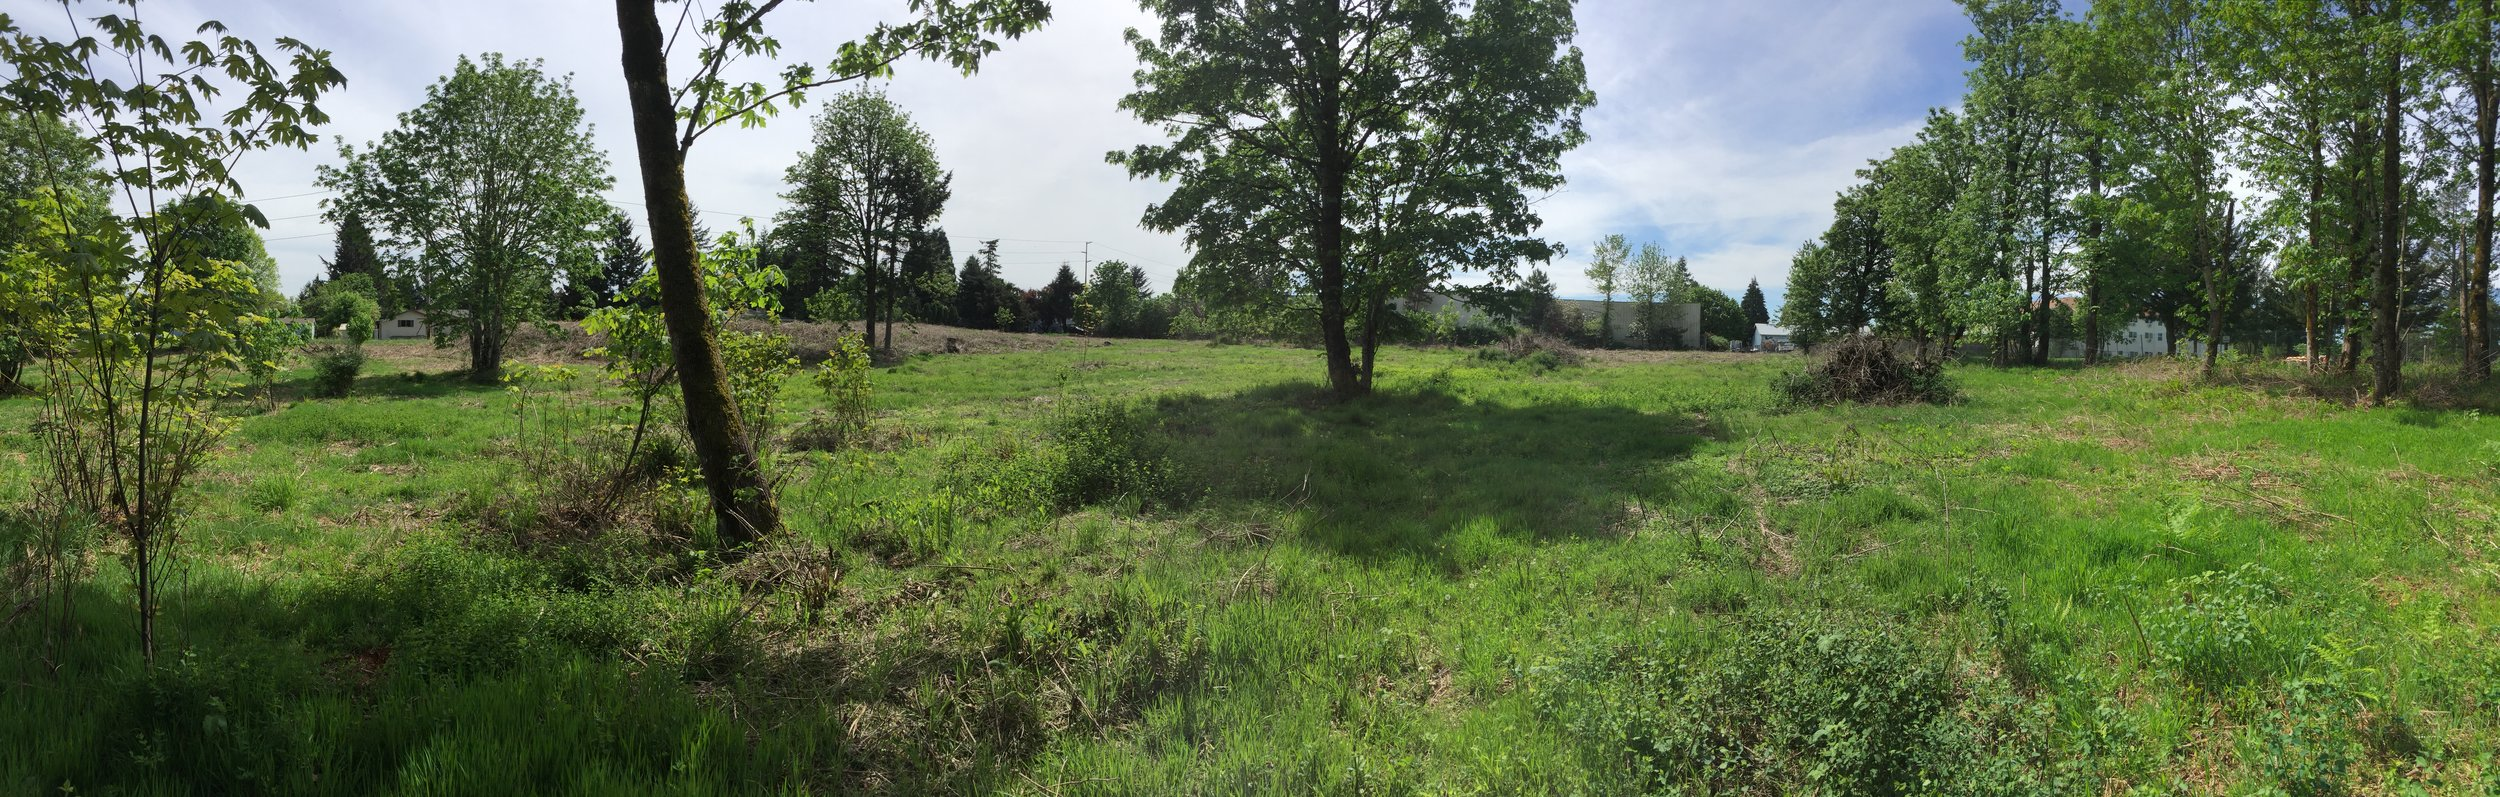 vacant land behind a shopping center, a meadow with a variety of tree species and grasses on a sunny day